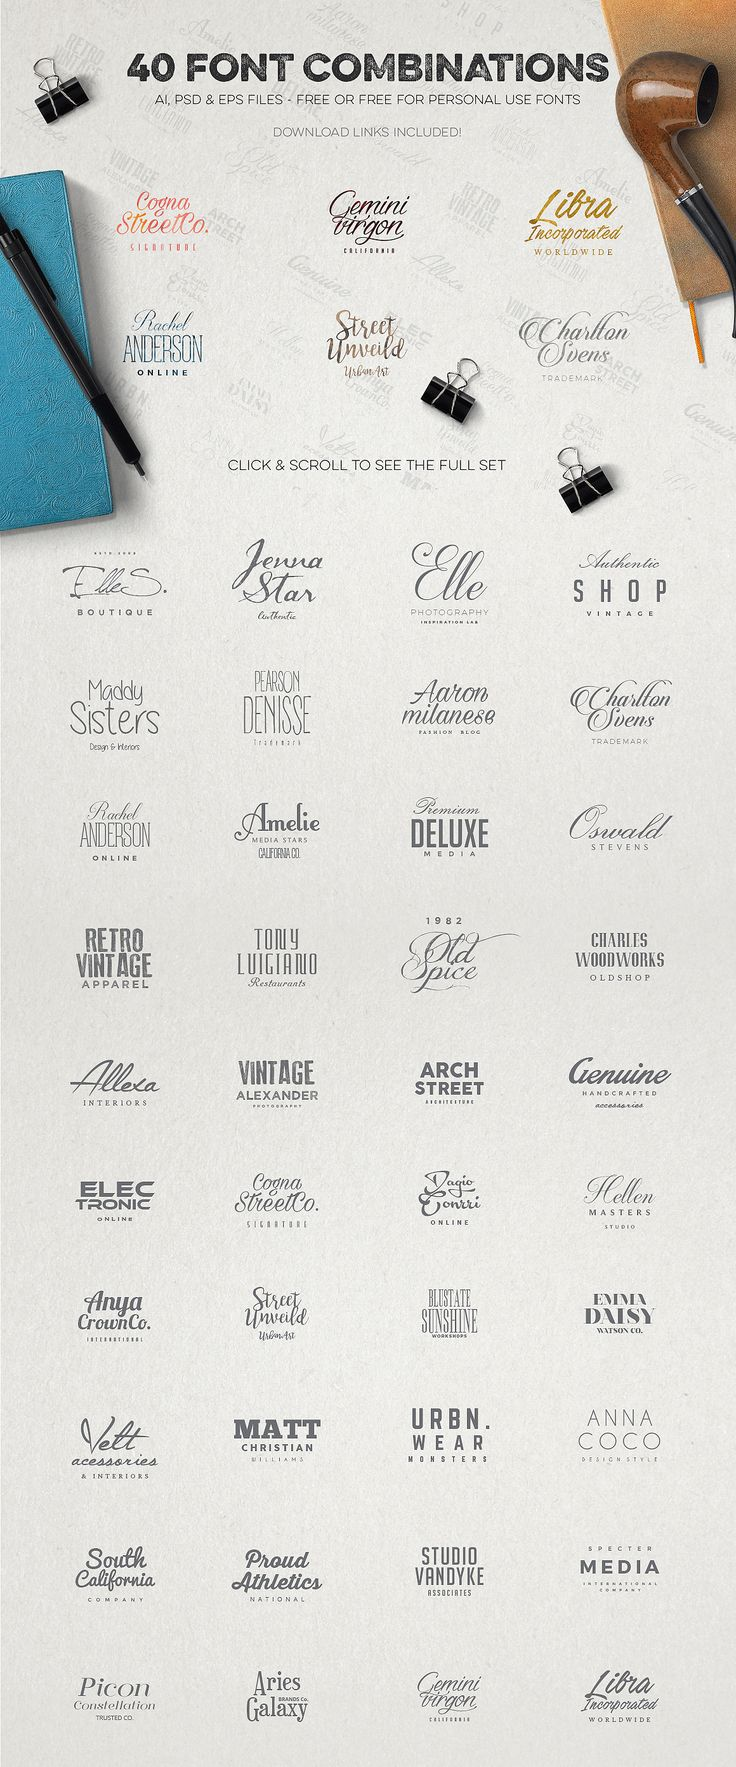 This bundle featues our 5 awesome logo creation kits and 4 free bonus logo sets, and not just any sets but some of our best selling ones! The regular price of all of the items included is 120$ and you can buy all together for only 39$!